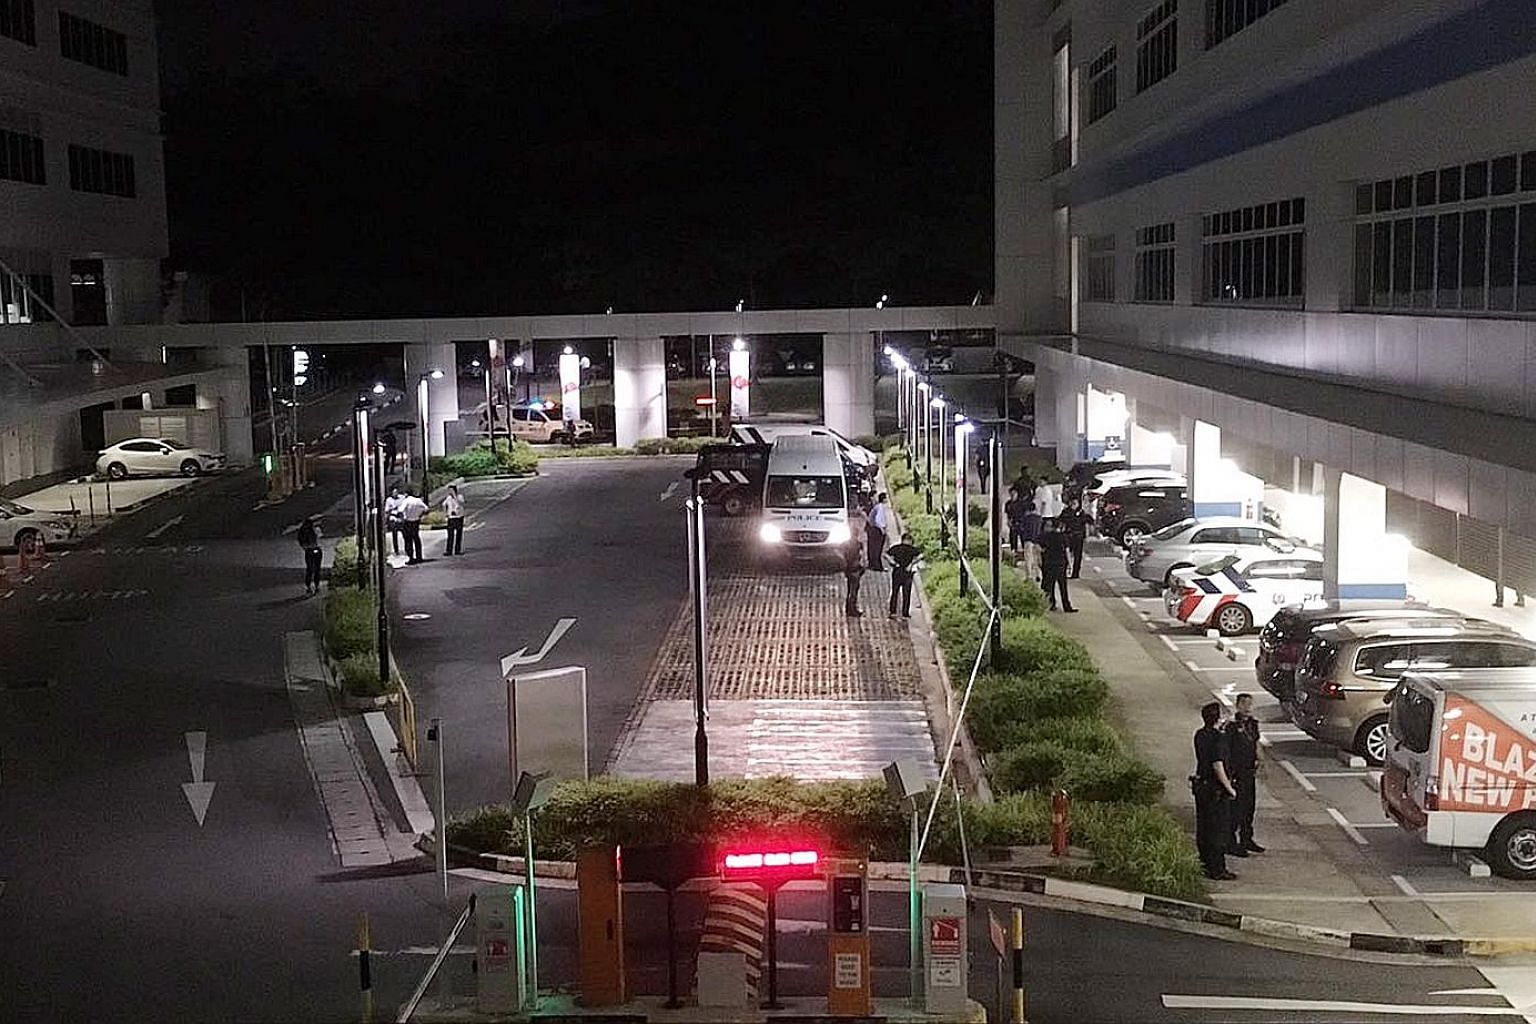 Police officers at the entrance to the sheltered carpark of ITE College Central in Ang Mo Kio, where a woman was believed to have been stabbed to death last night.